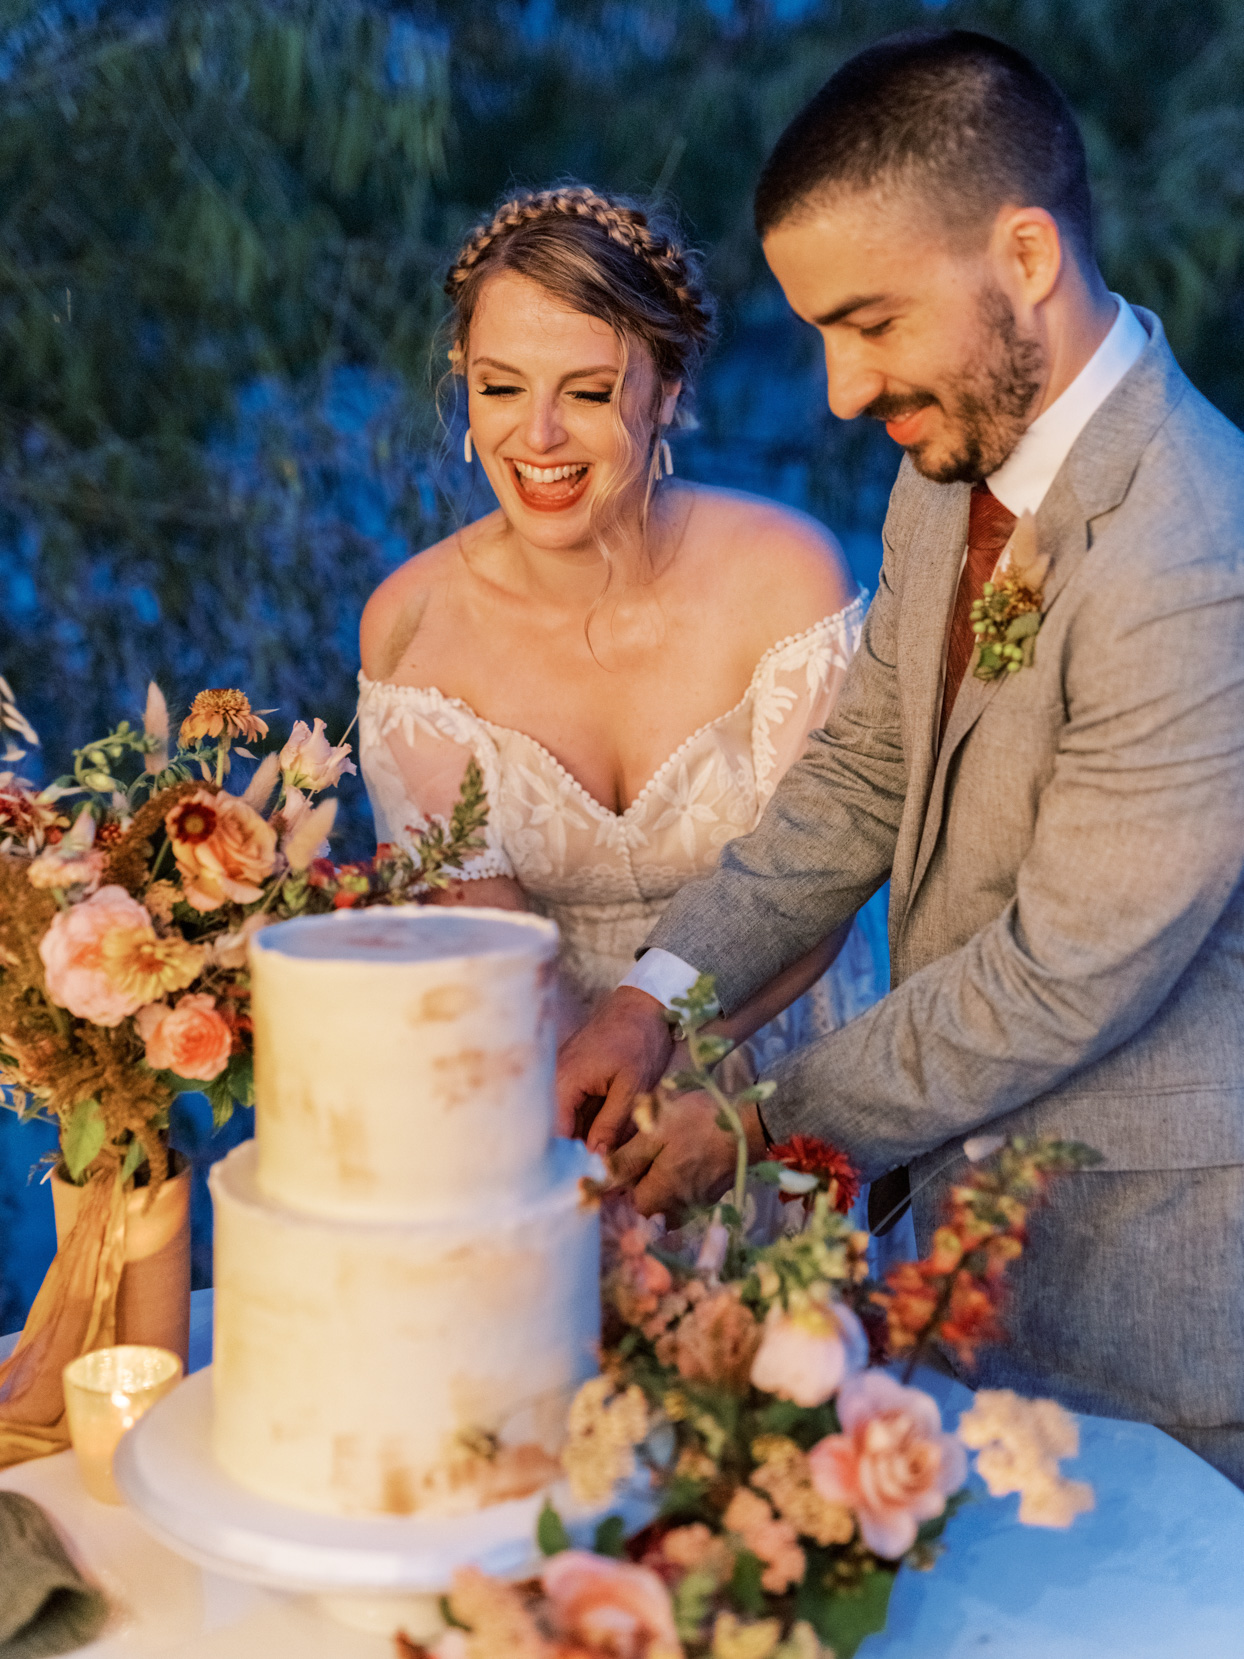 bride and groom smiling while cutting cake